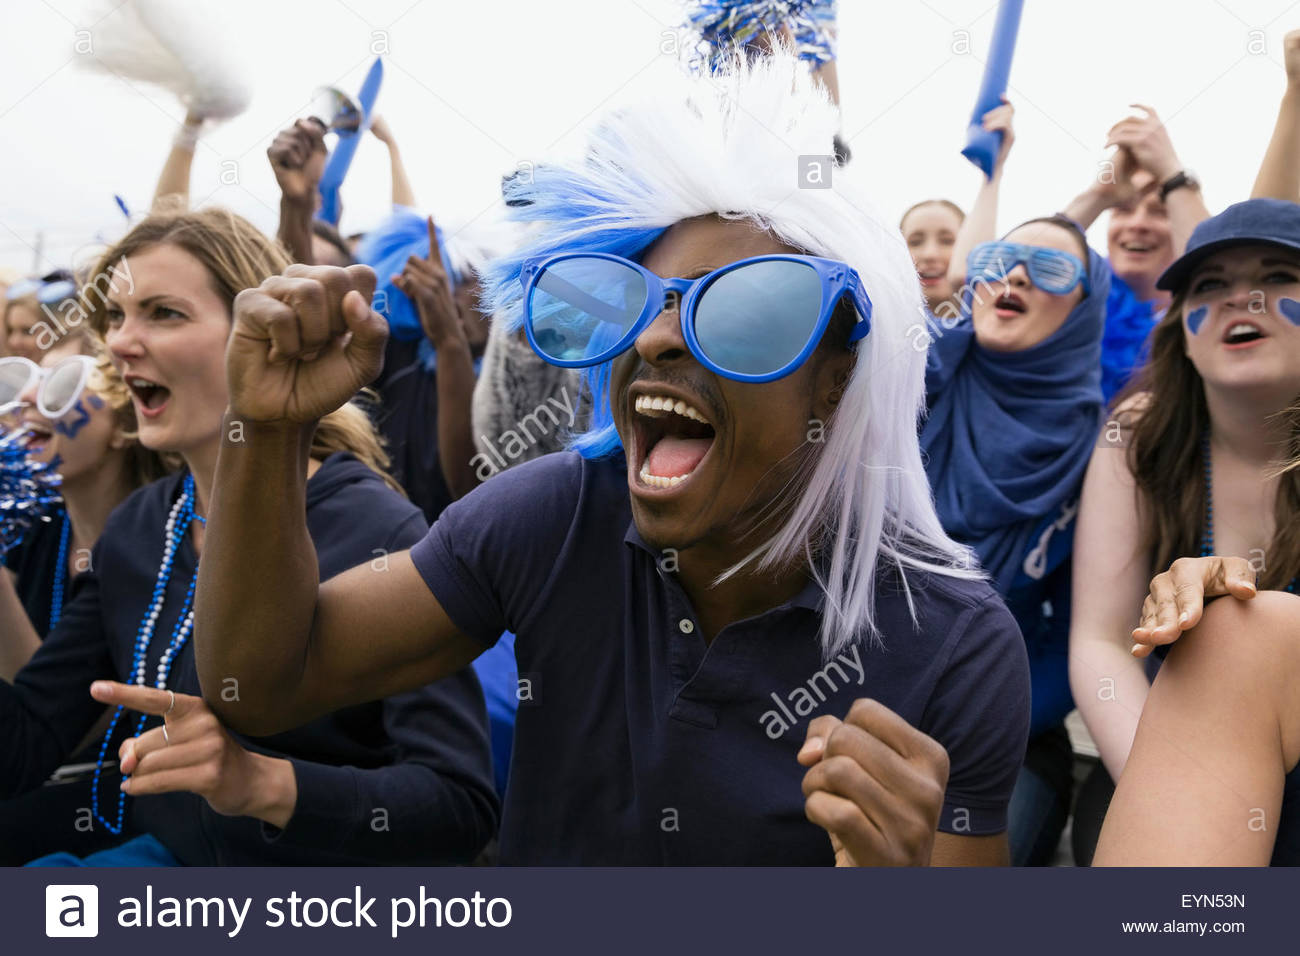 Fan enthousiaste en lunettes surdimensionnées cheering Photo Stock